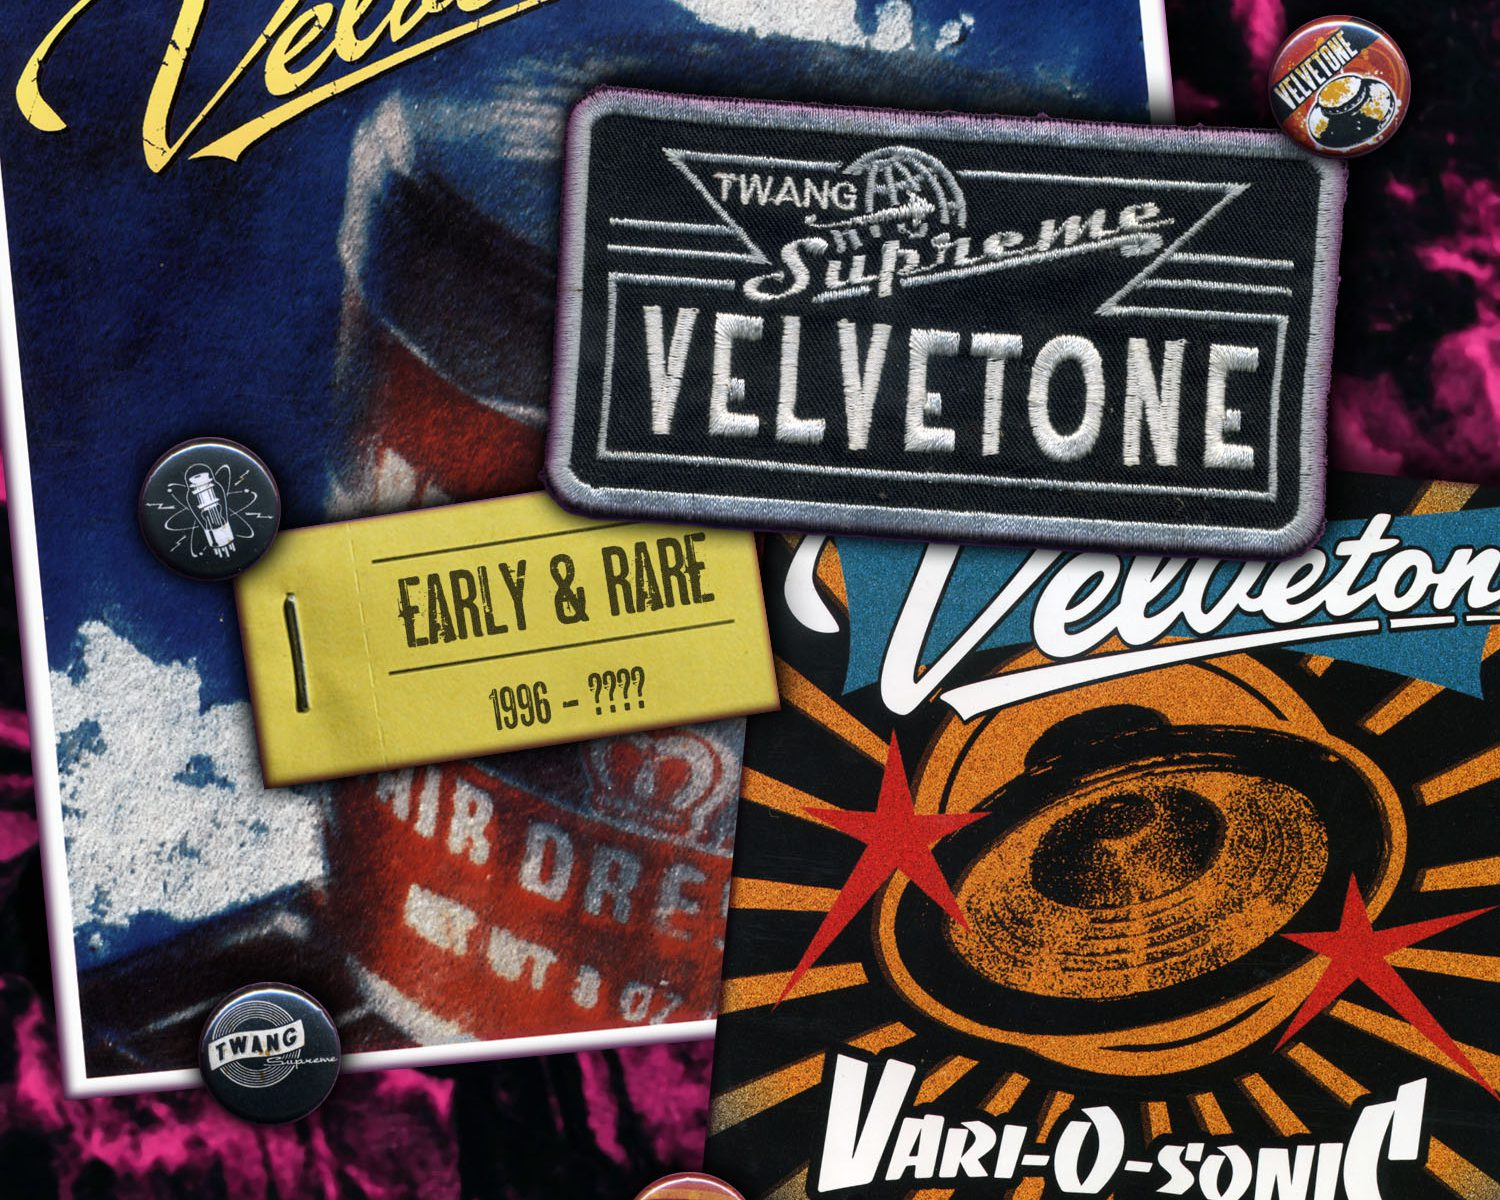 VELVETONE - Early & Rare - Stumble - 2012